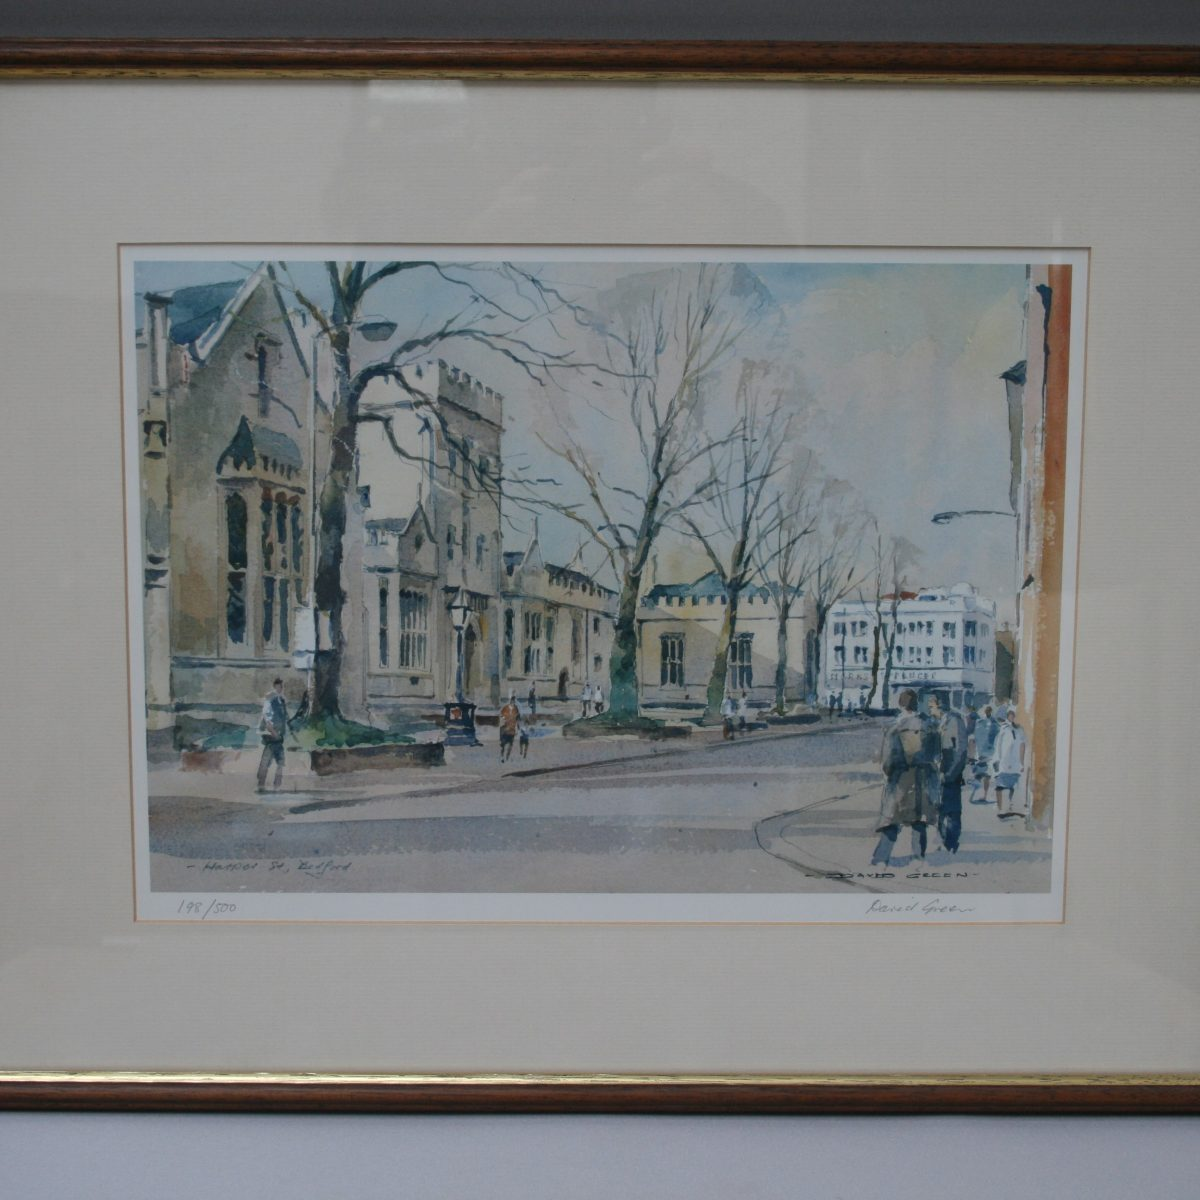 David Green print of Harper Street in Bedford